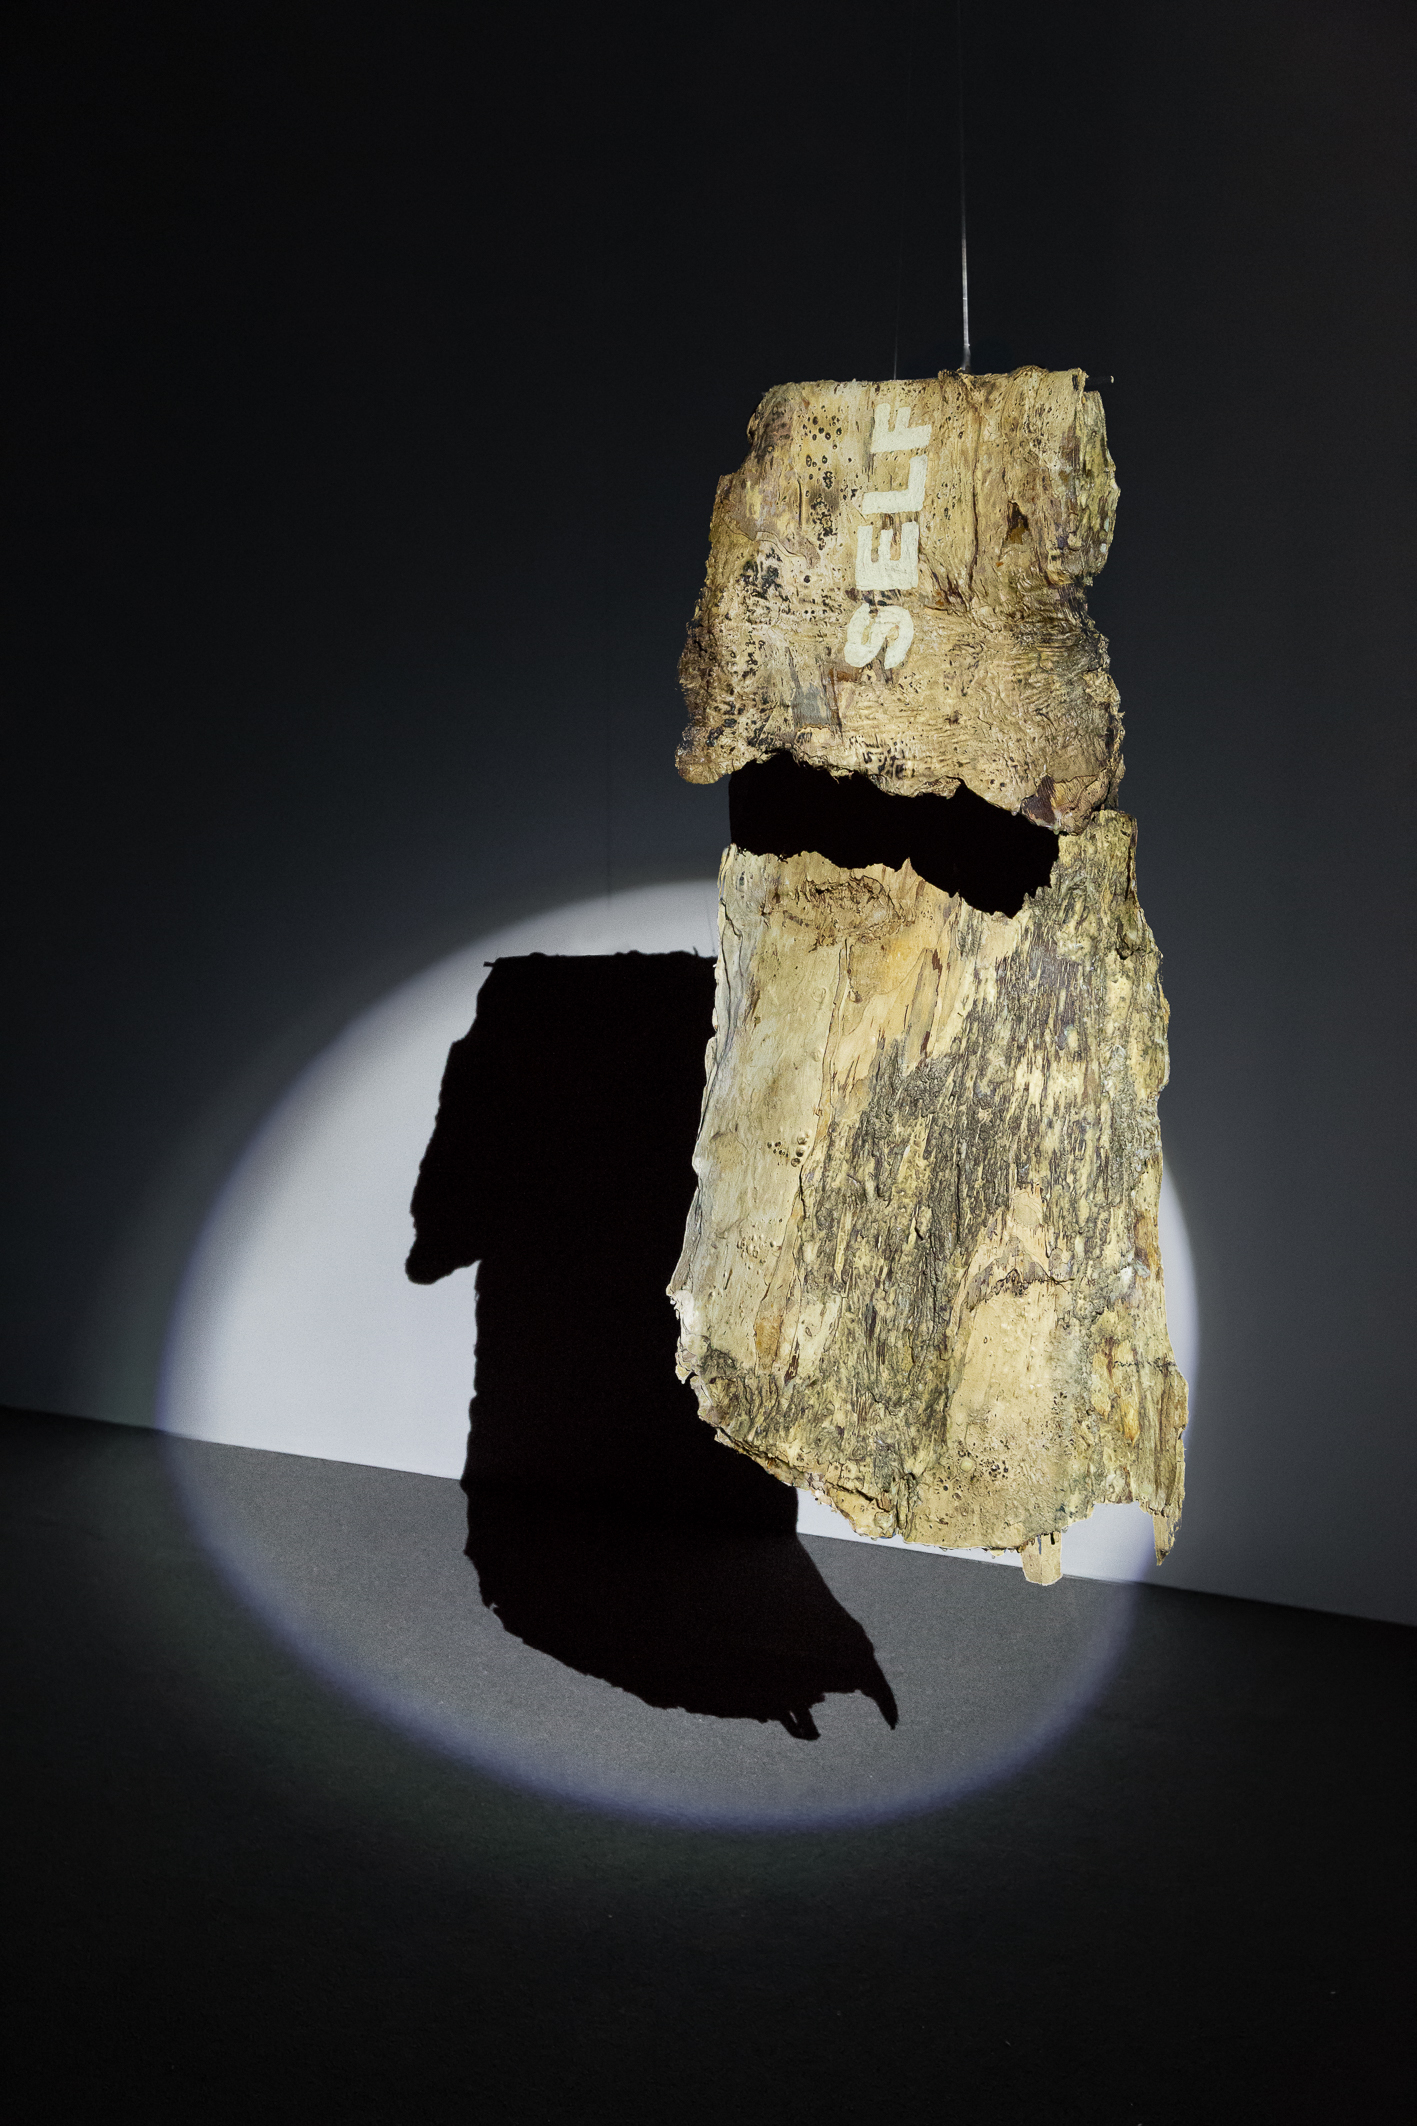 Megan Cope, The Empire Strikes Black II (Self Determination), 2018, Oodgeroo (paperbark), Ochre and Beeswax 104 x 48 cm (approx.)